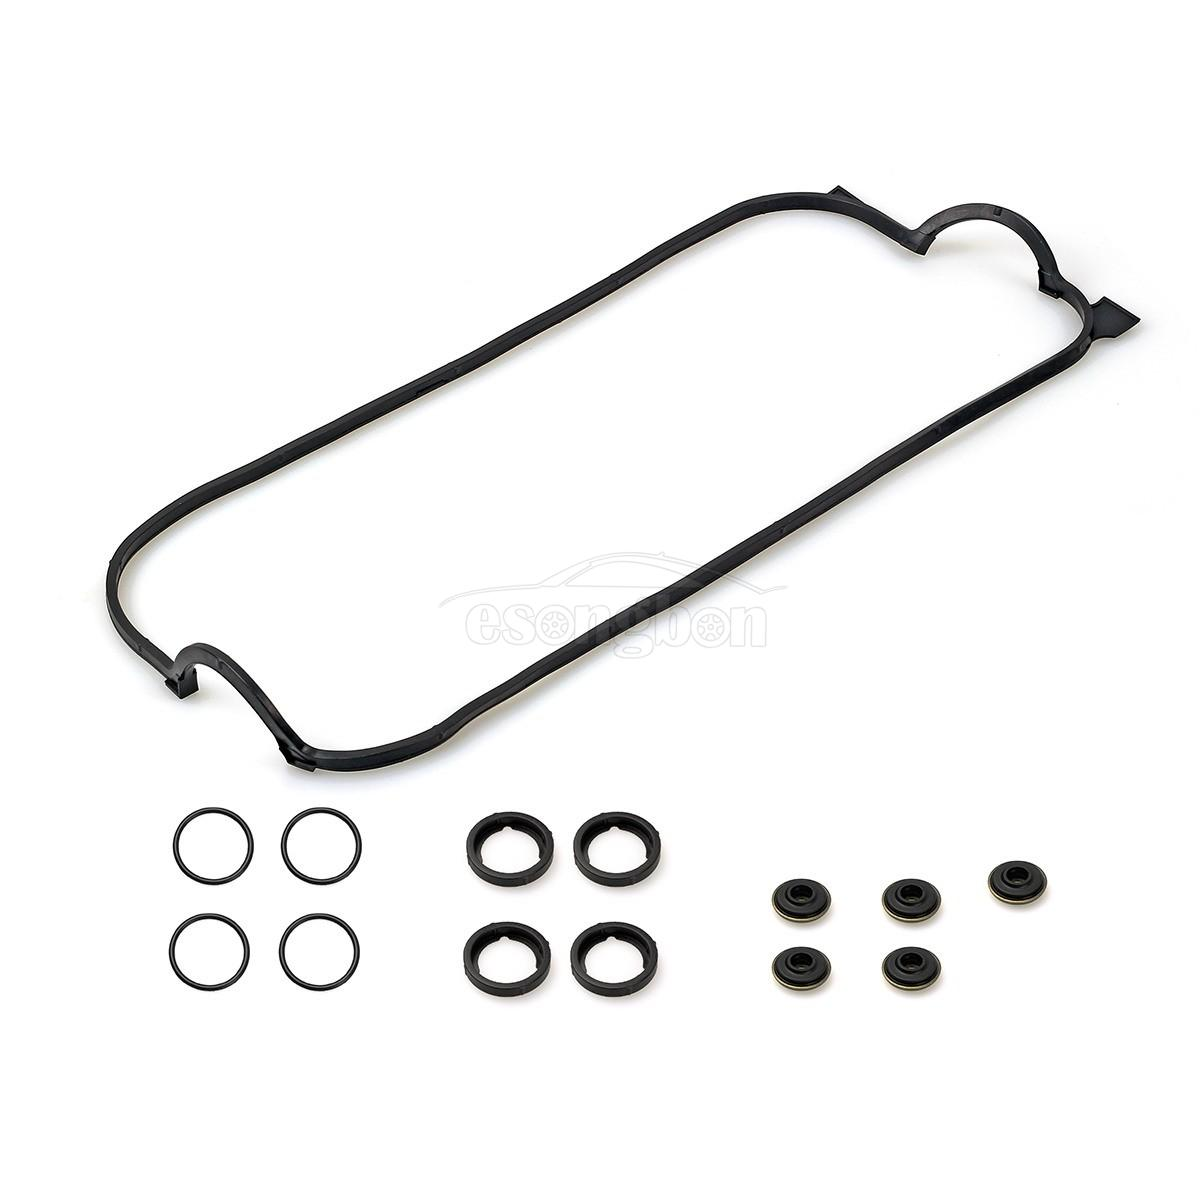 Engine Valve Cover Gaskets Fits 2 2l Honda Accord F22a